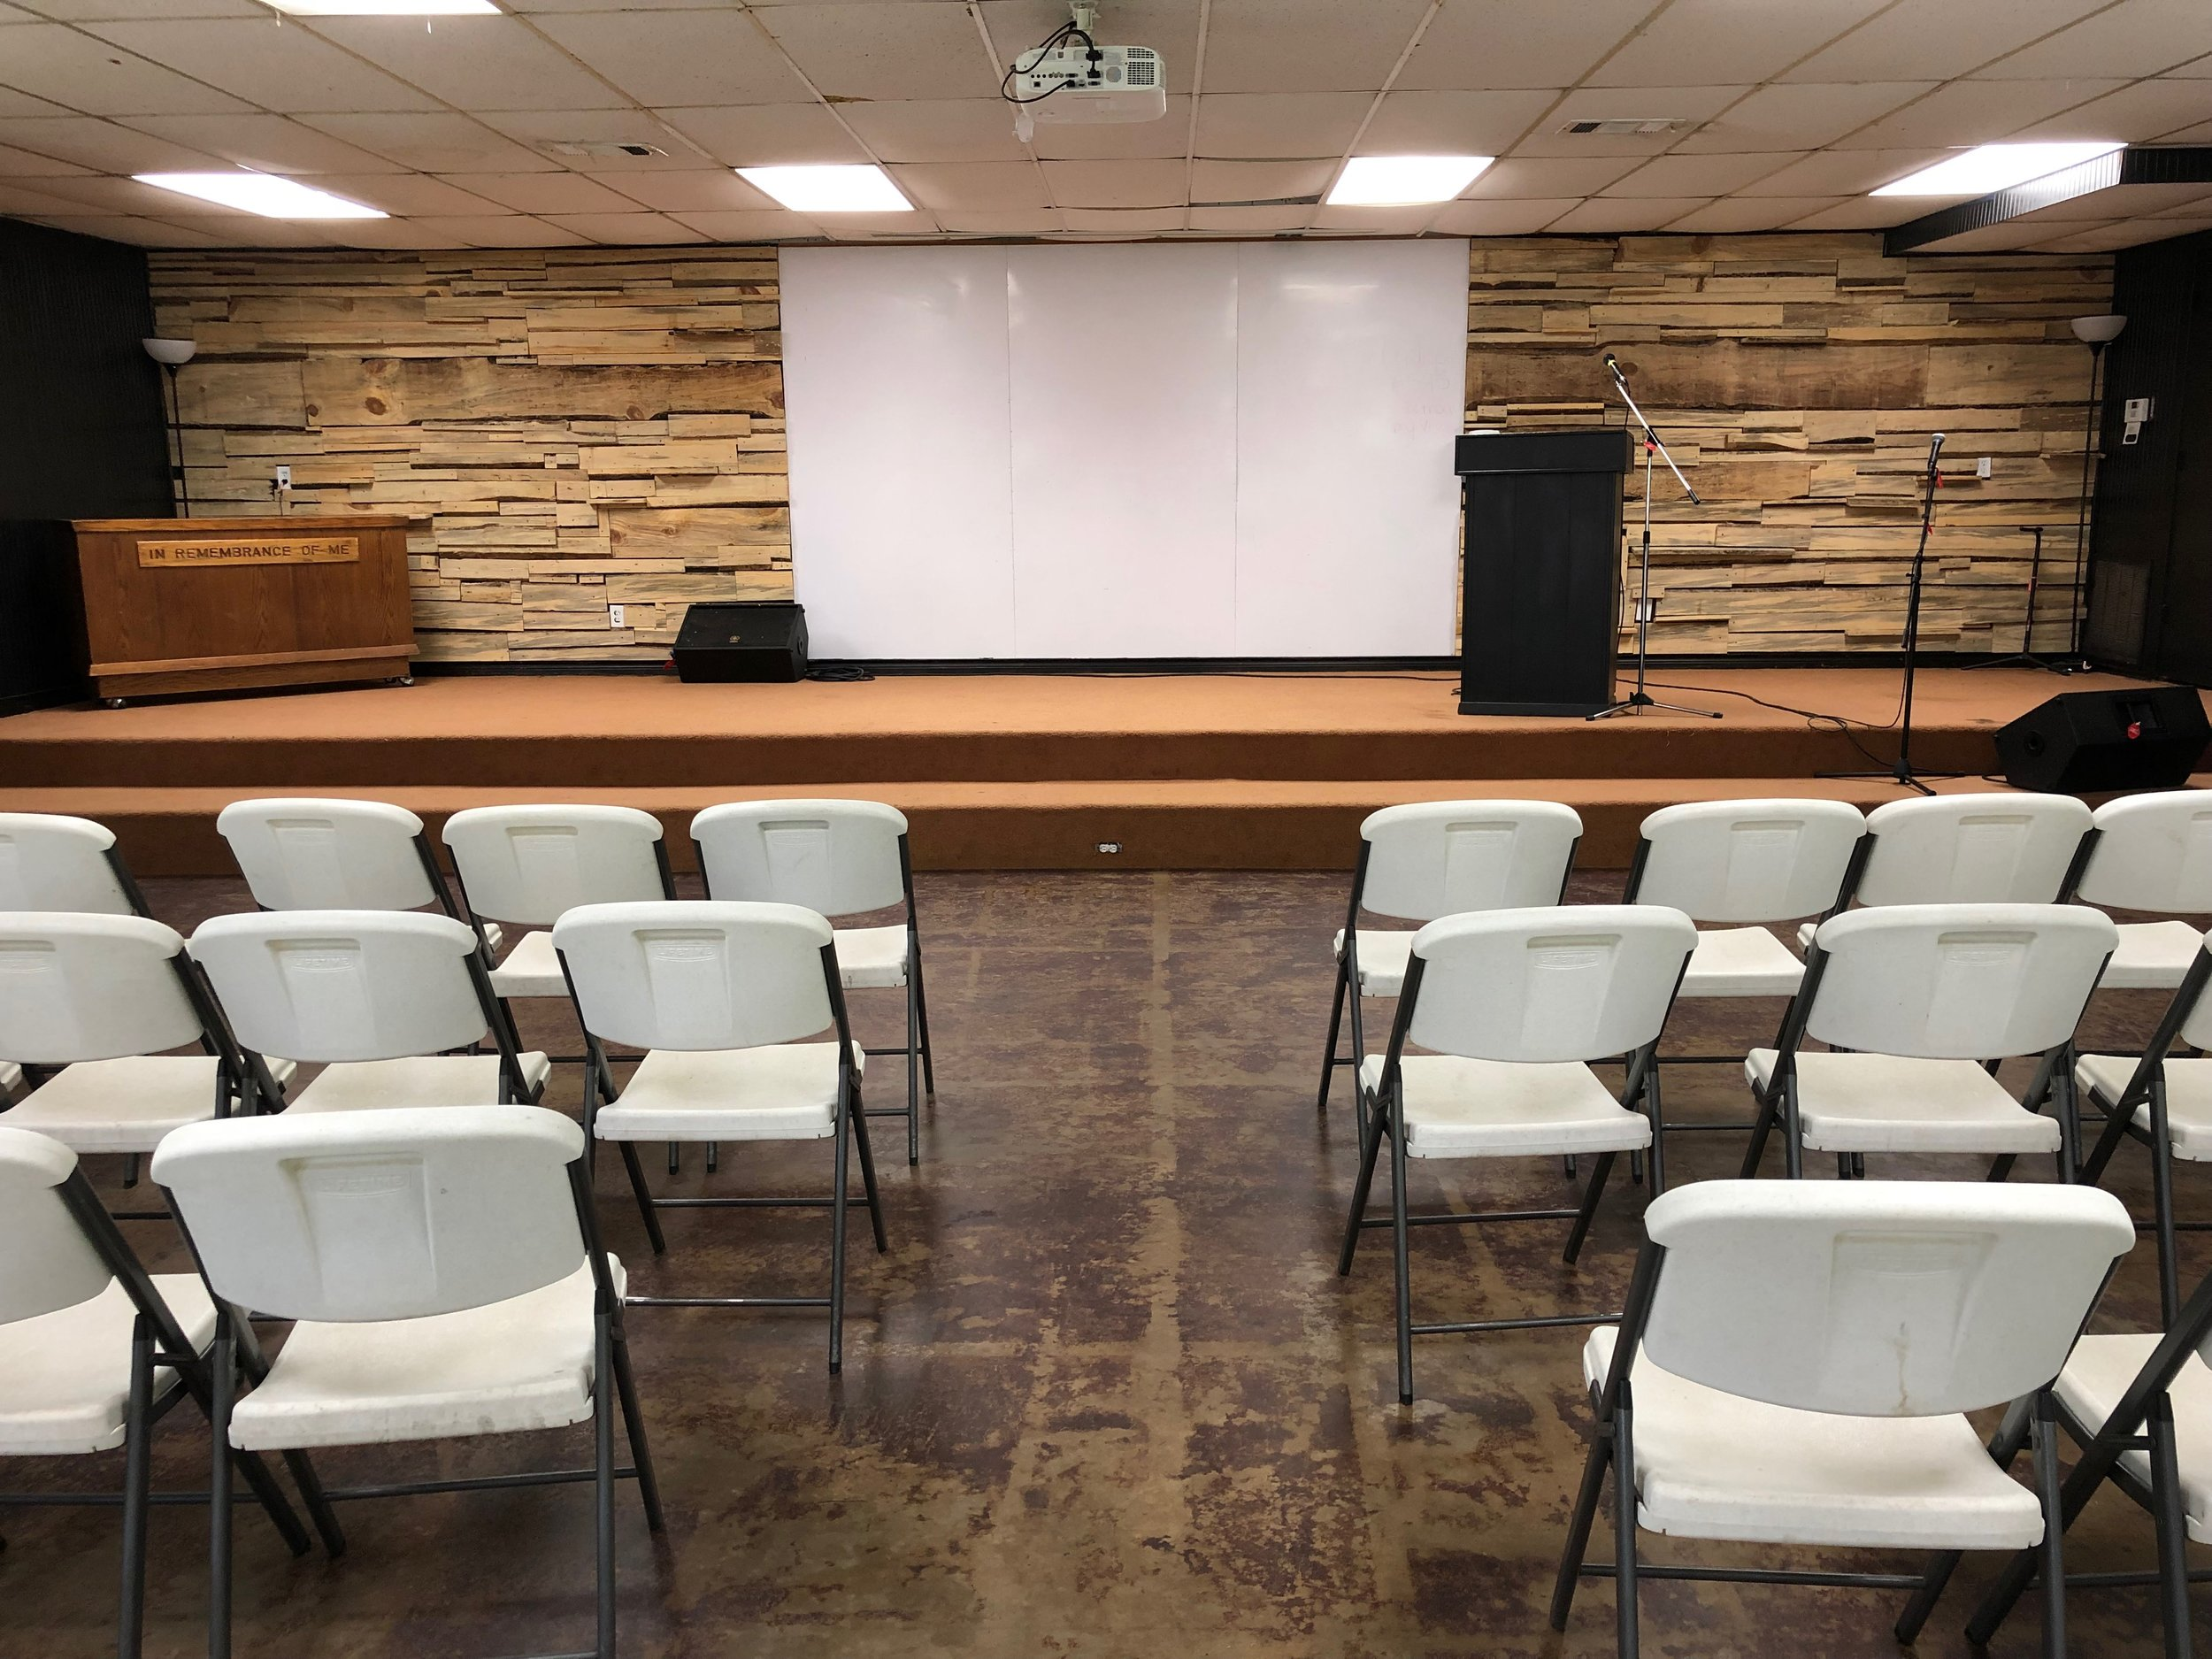 Meeting space for 130 people - Fully equipped meeting/worship space with sound system, projector, and multiple monitors.